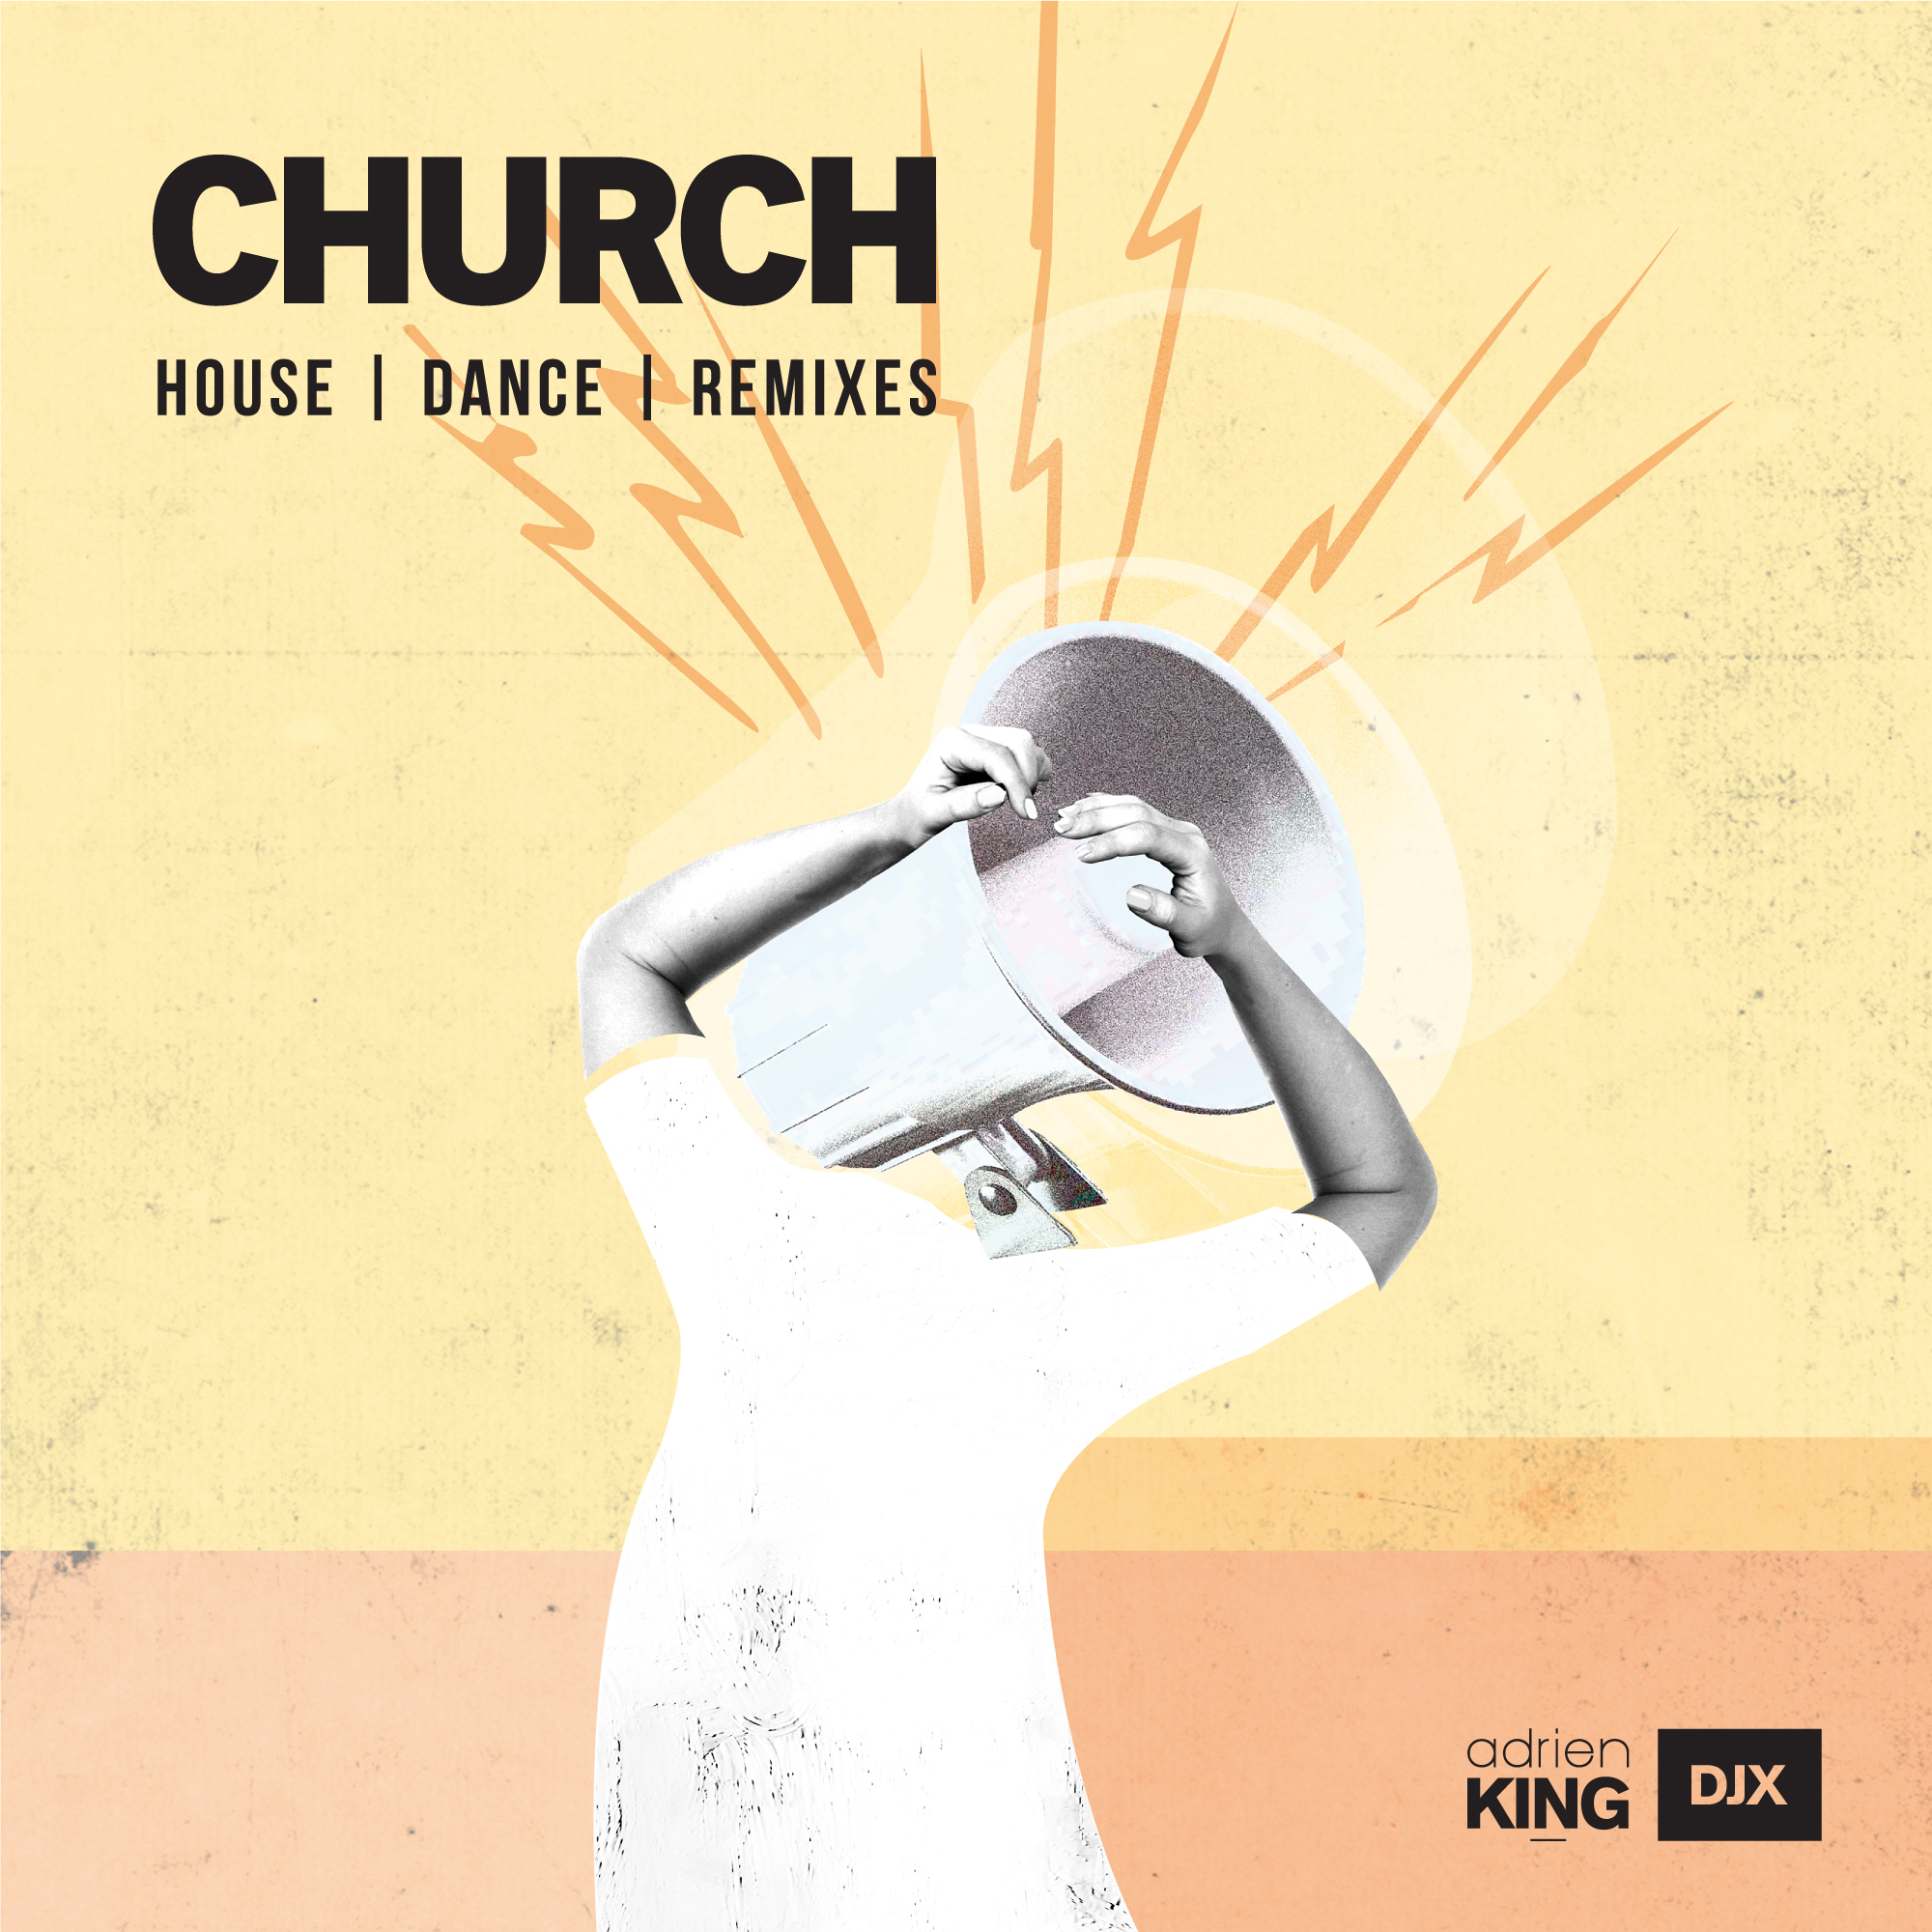 Church – House | Dance | Remixes